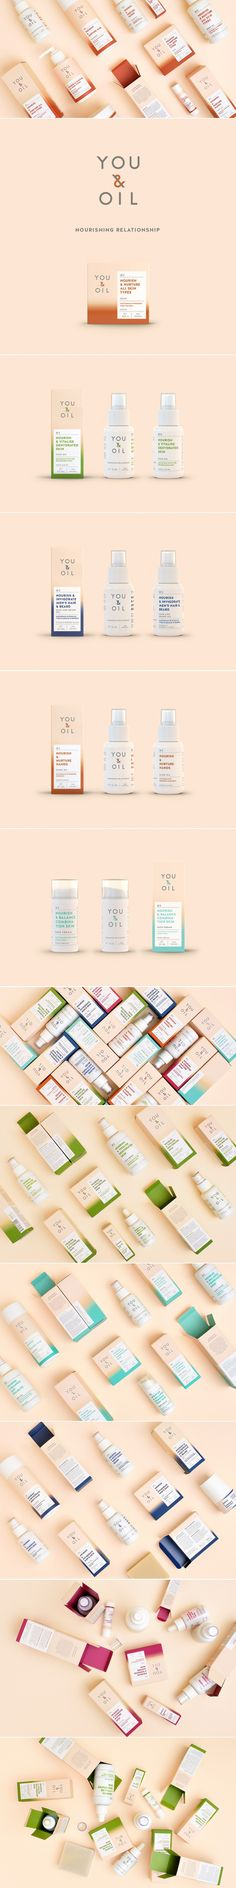 YOU & OIL Natural Cosmetics — The Dieline | Packaging & Branding Design & Innovation News